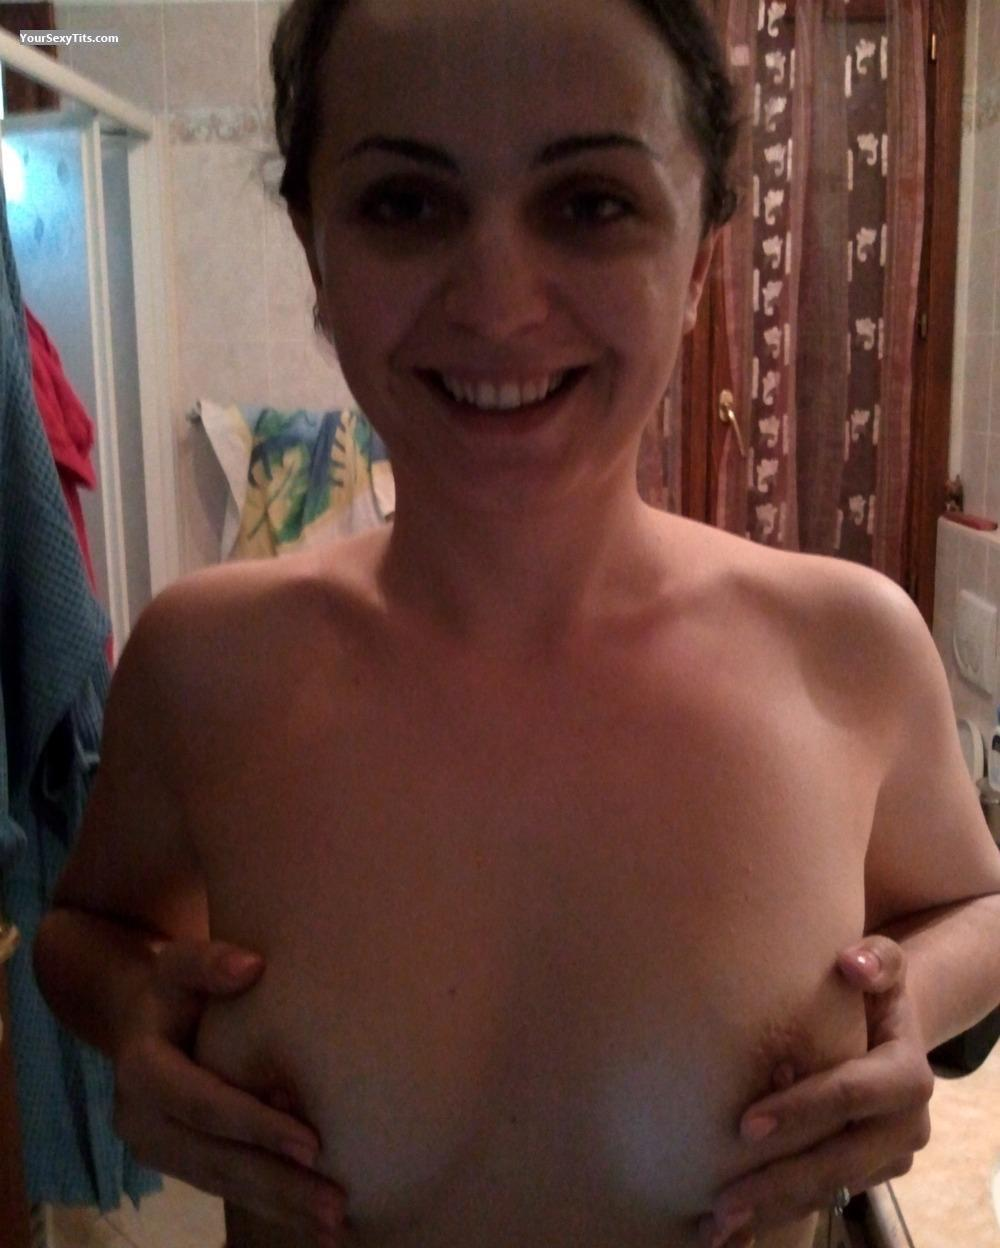 Tit Flash: Medium Tits - Topless Martina from Italy